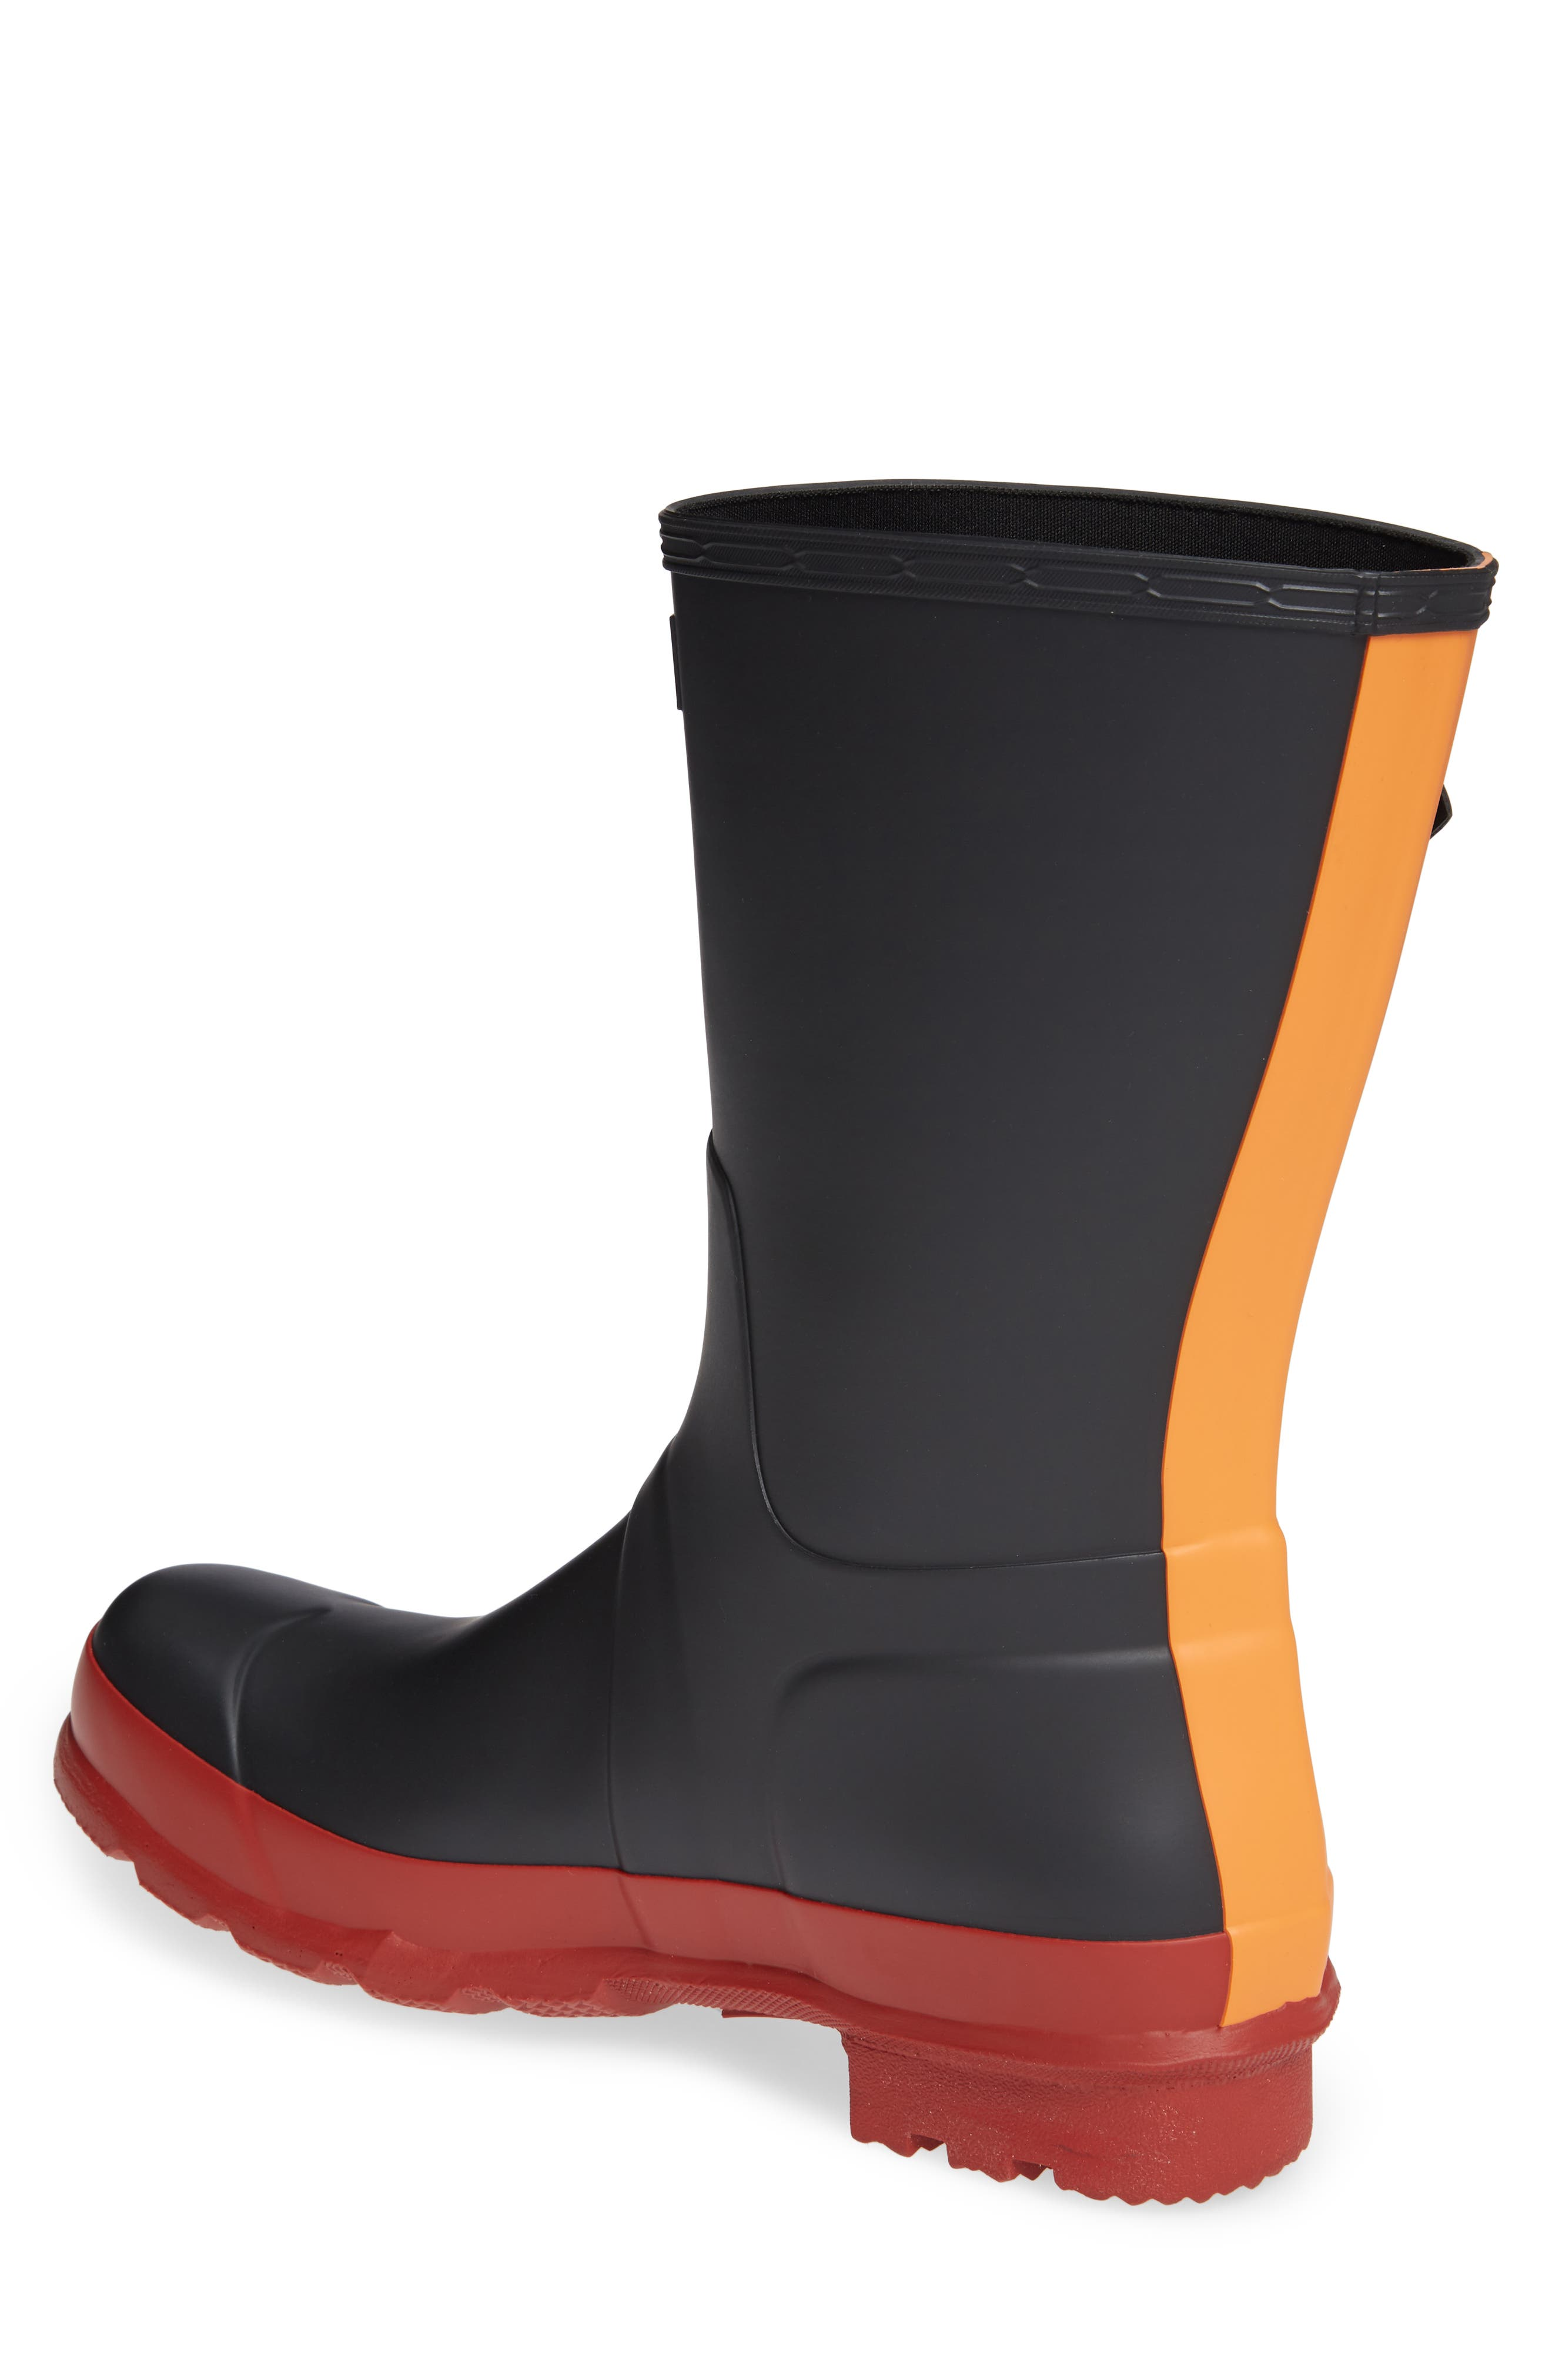 Waterproof Original Boot,                             Alternate thumbnail 2, color,                             BLACK/ RED COLOR BLOCK